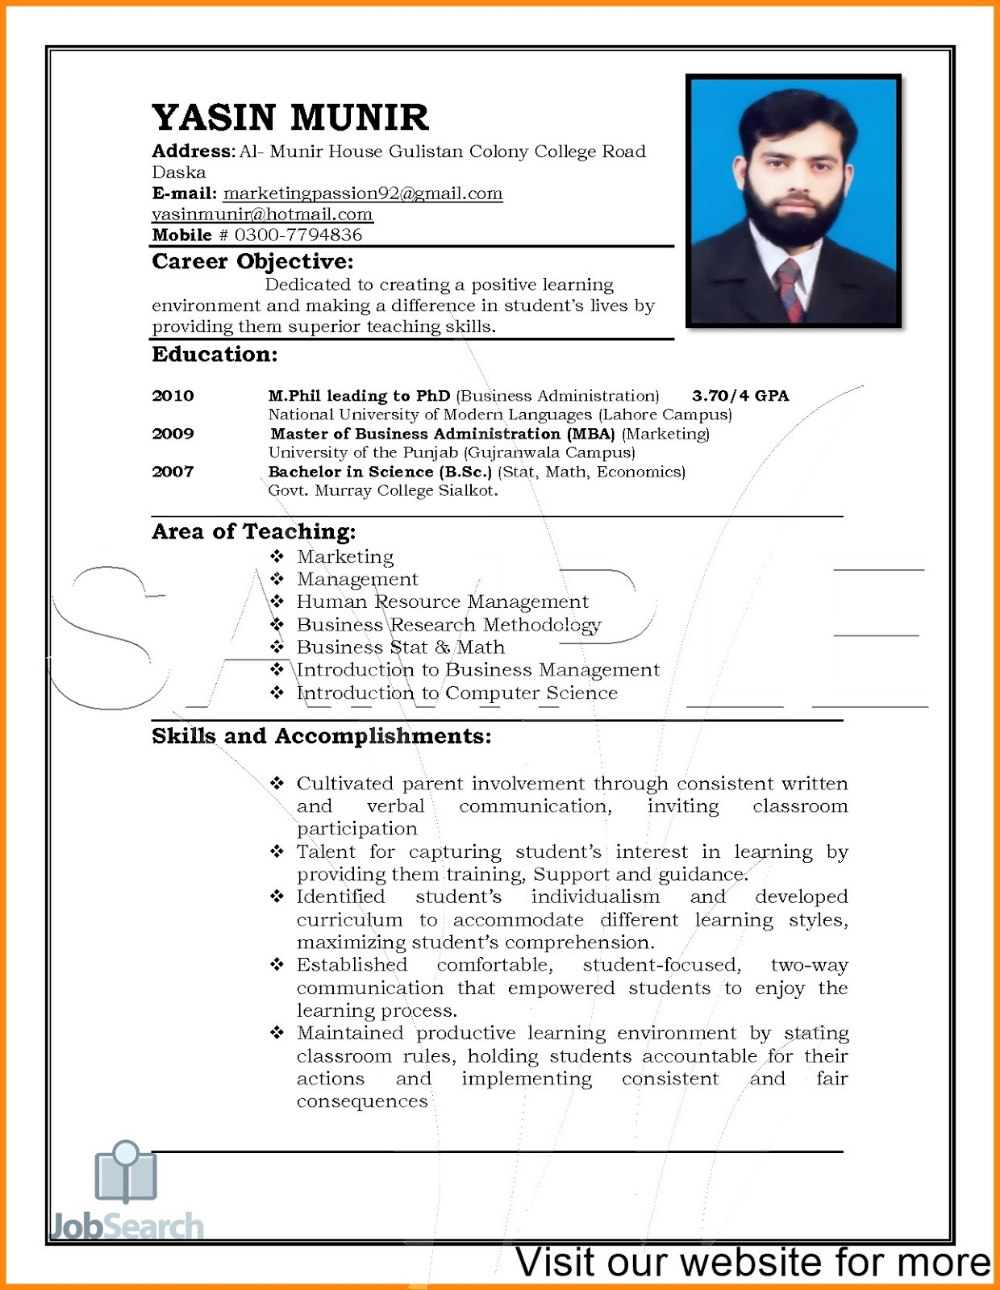 Job Resume PDF 2020 Job Resume for Freshers in 2020 Job